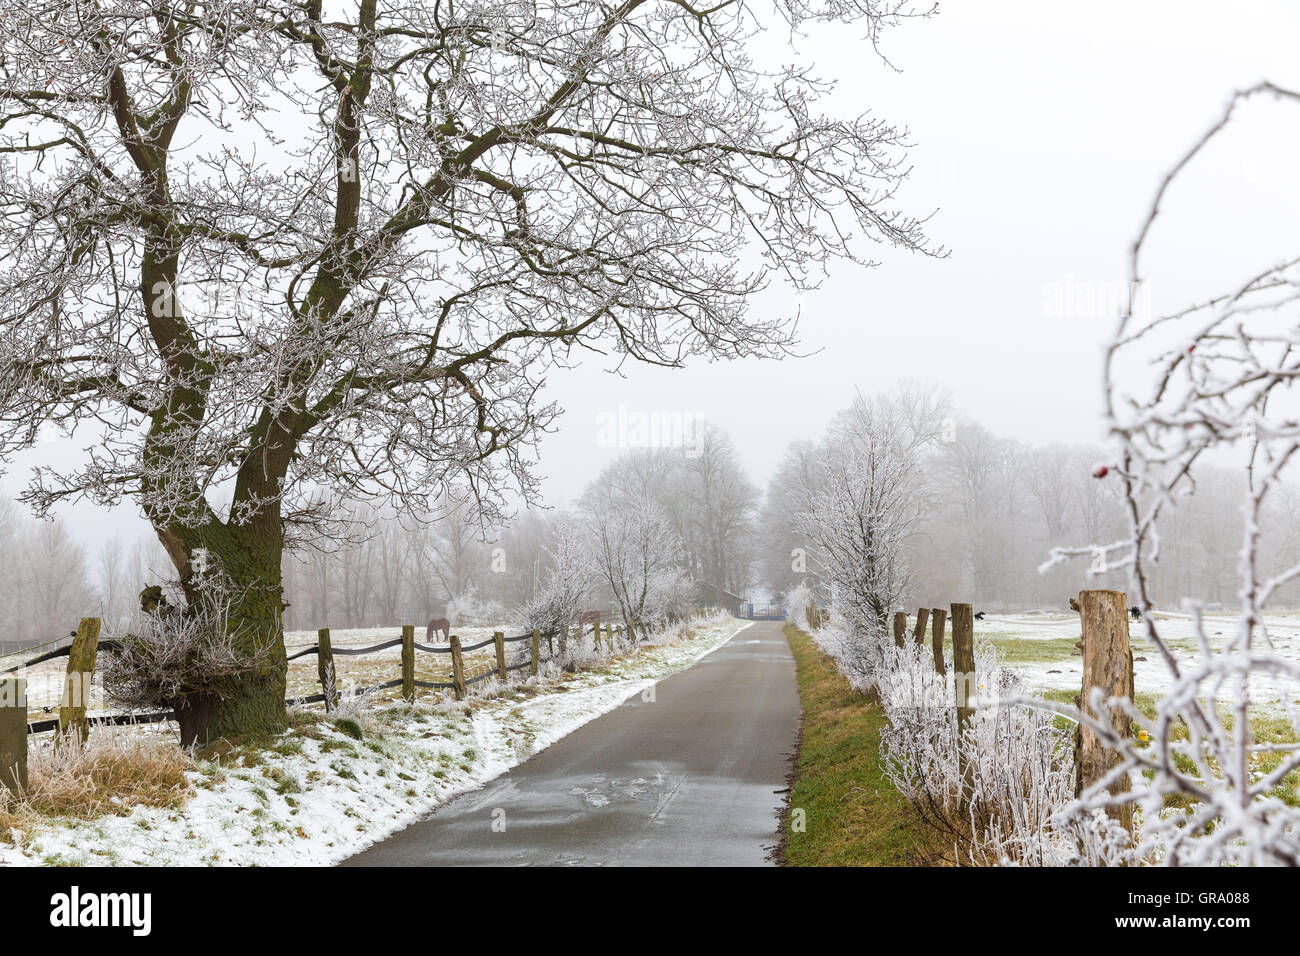 Small Road In Winter With Fields And An Old Oak With Lots Of Hoarfrost - Stock Image